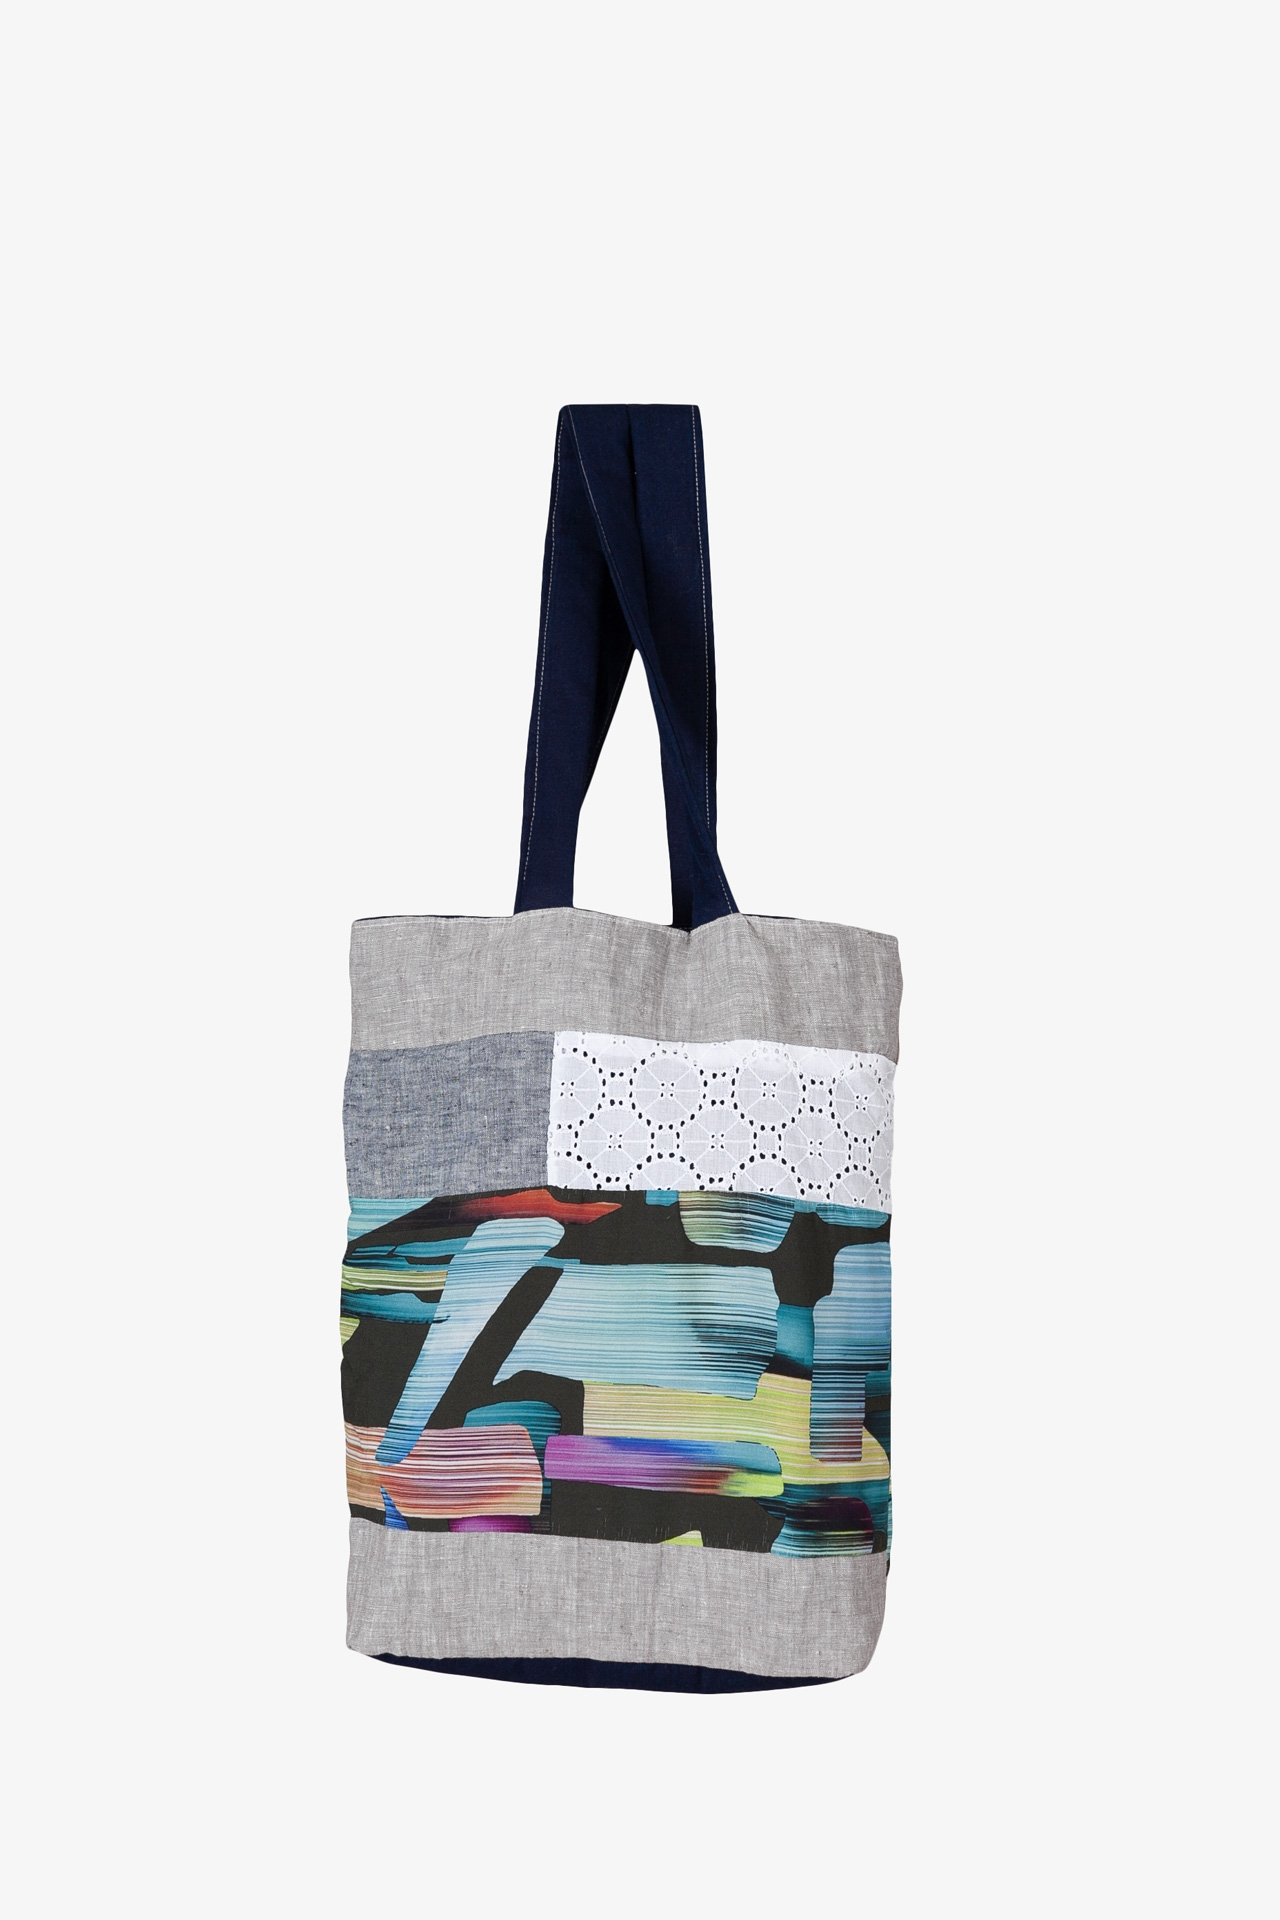 Tote Bag Patchwork Vitraux Dentelle